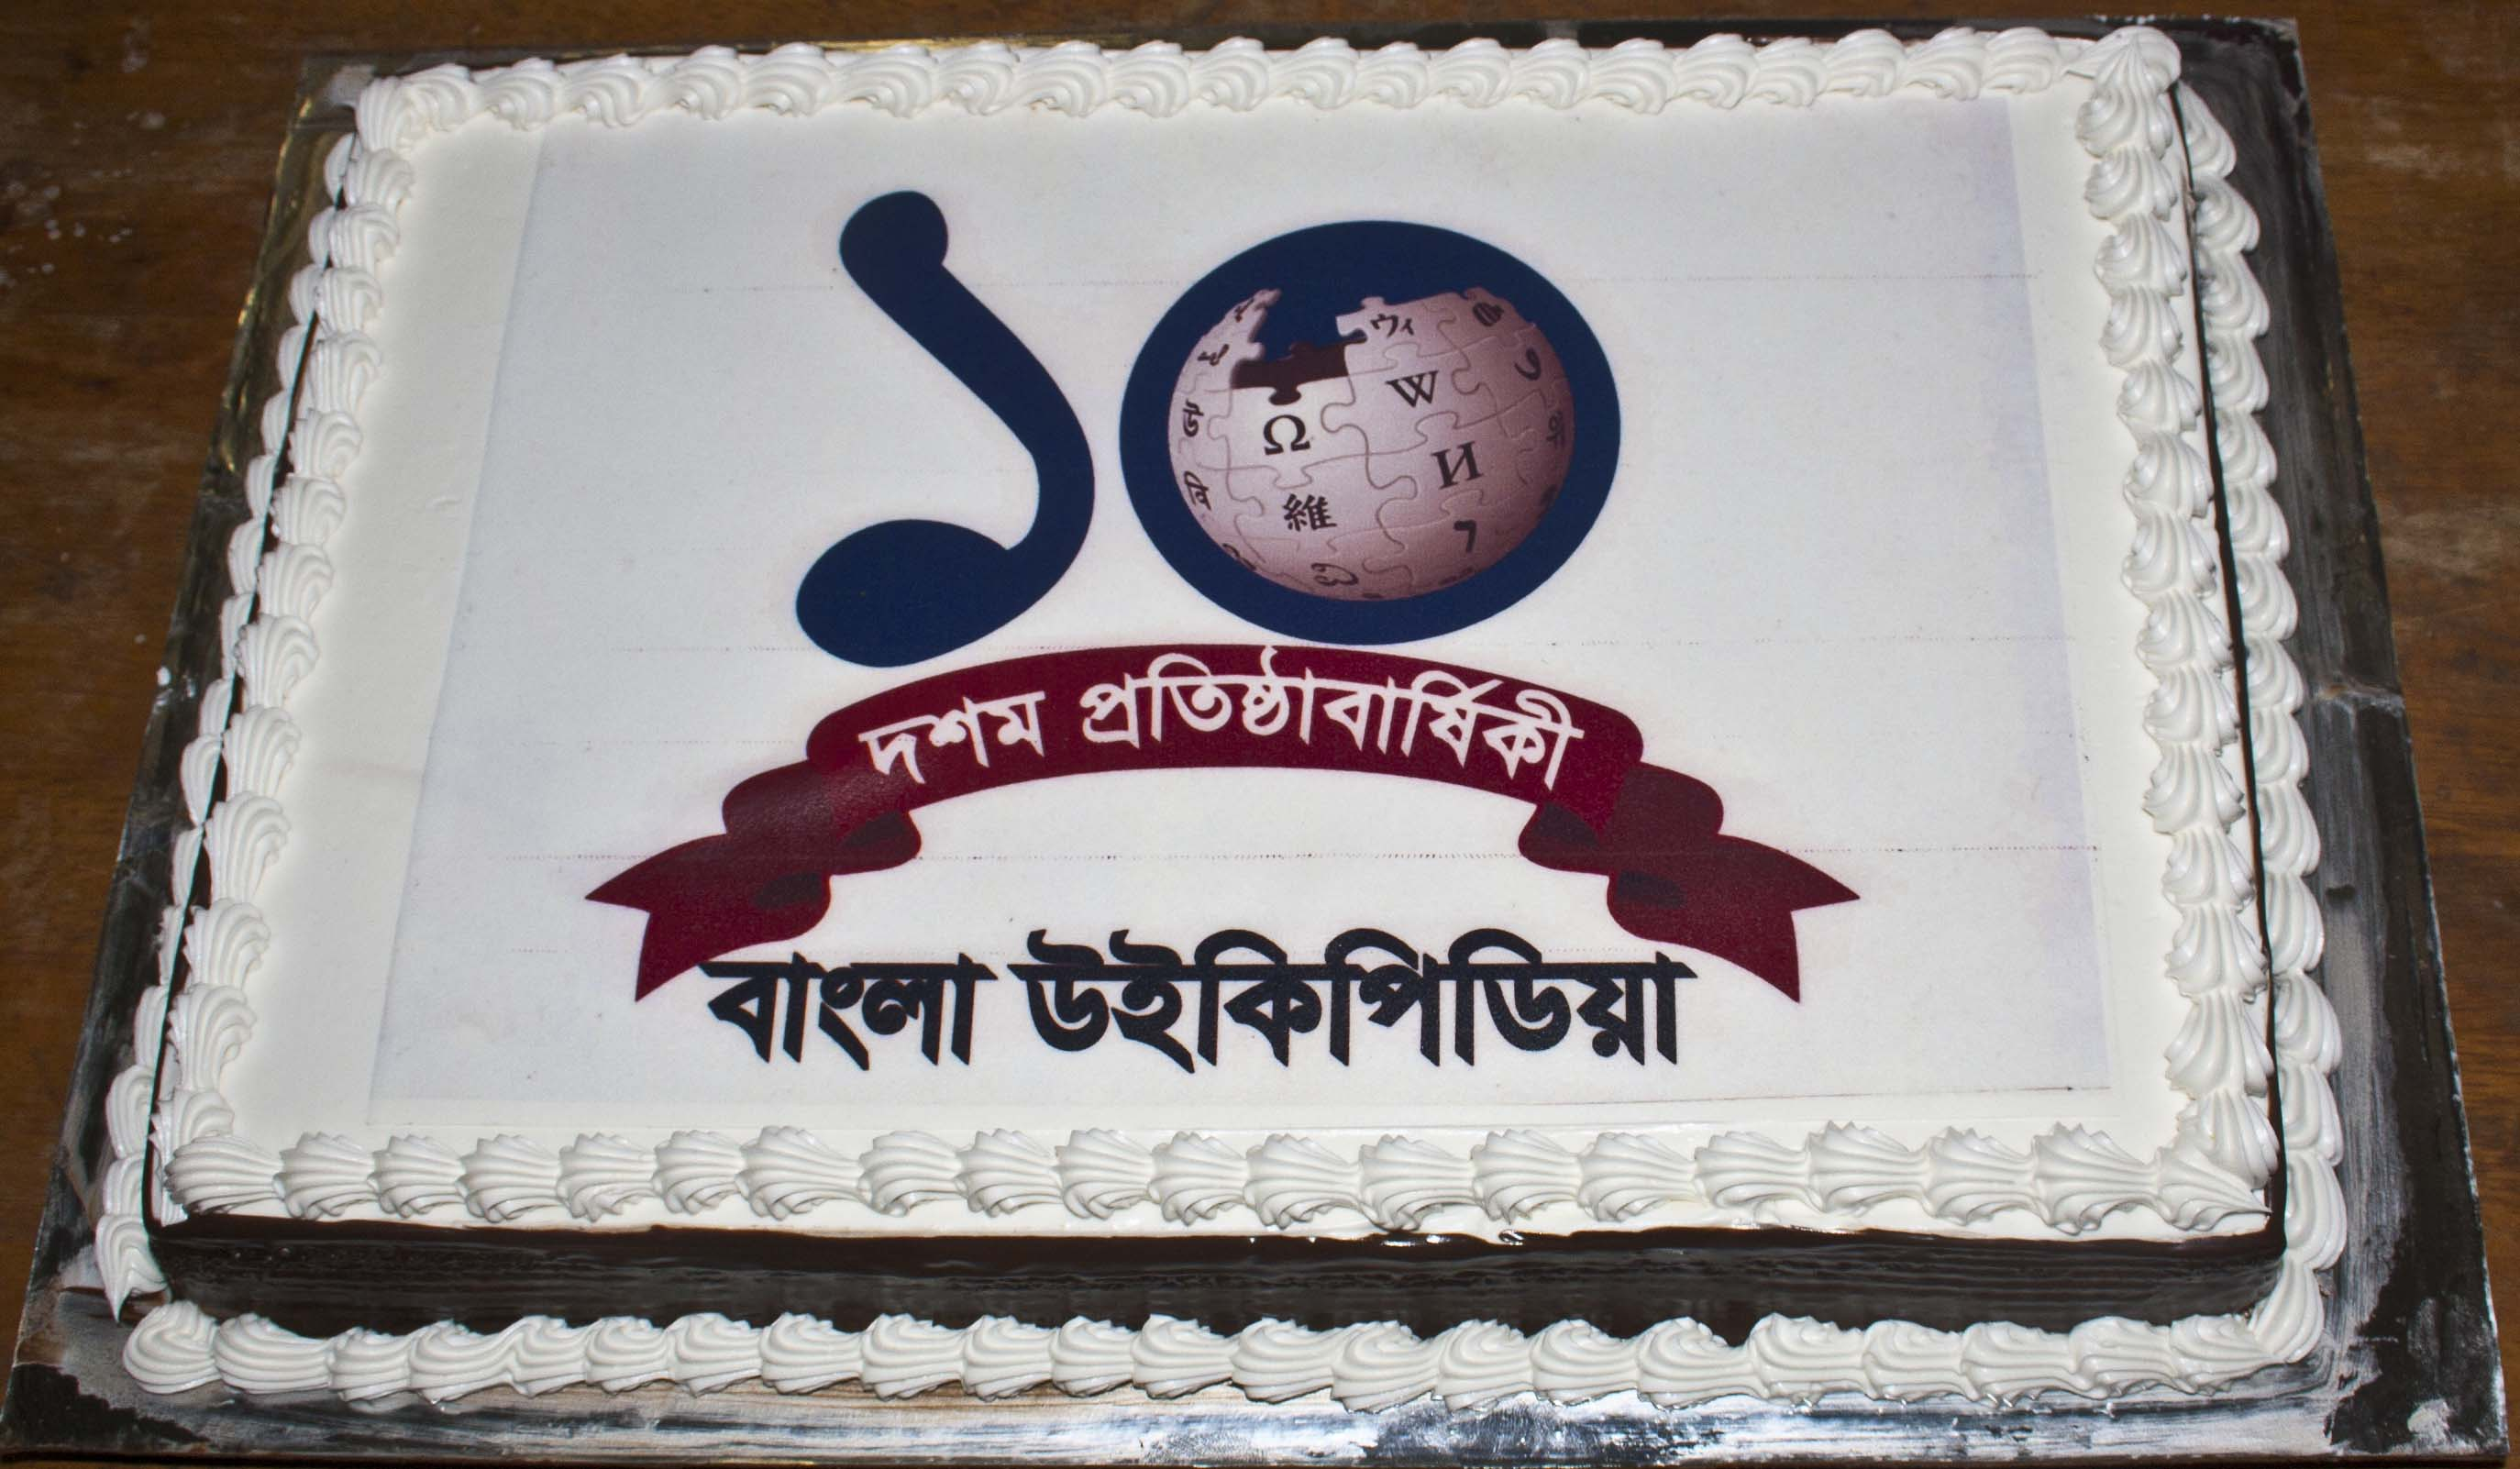 File Bnwiki10 Bengali Wikipedia Birthday Cake Wikipedia 10th